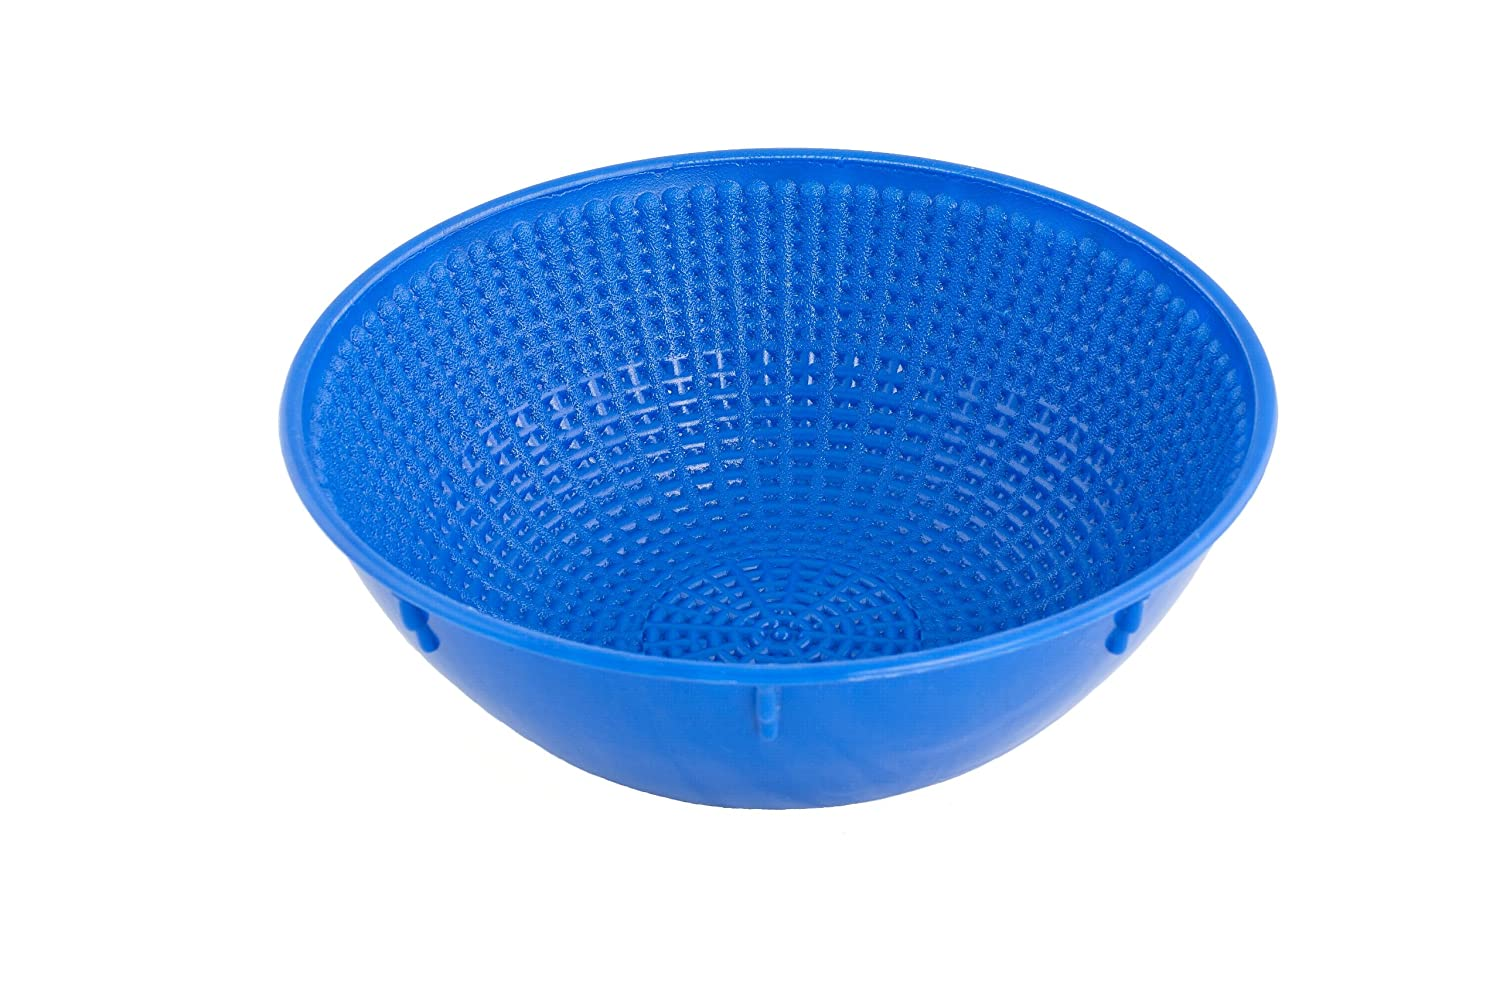 Paderno World Cuisine 7 1/4-Inch Round Green Proofing Basket (.5 Kilo) 47042-19